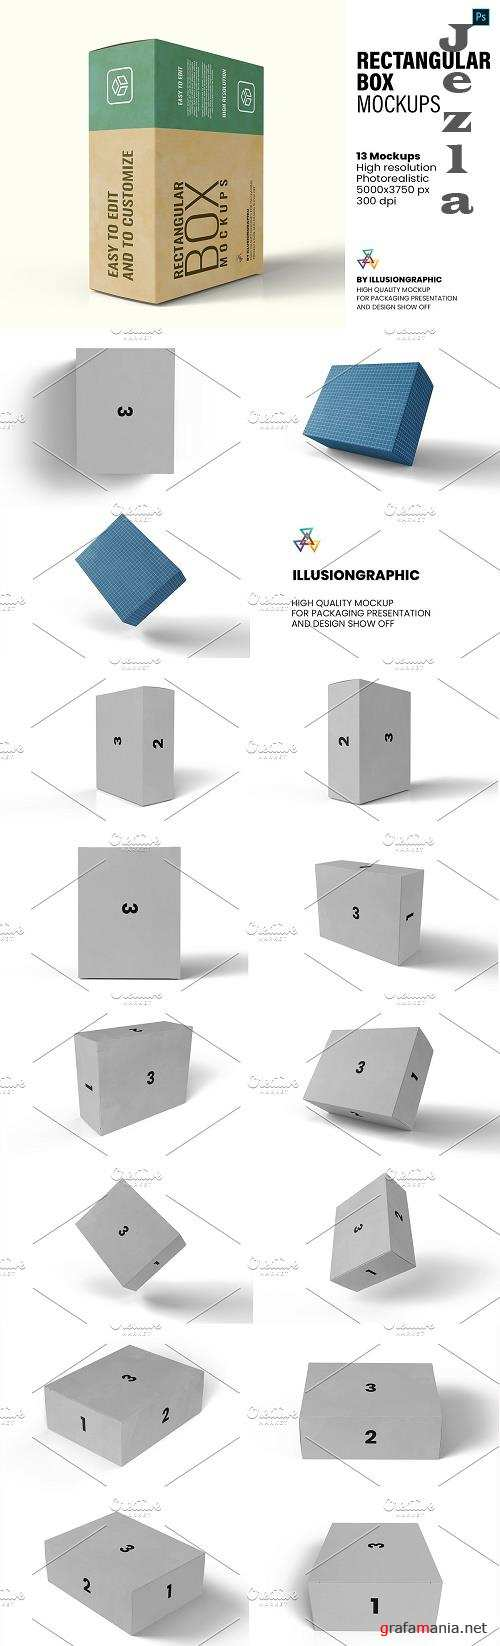 Rectangular Box Mockups - 13 views - 5825082